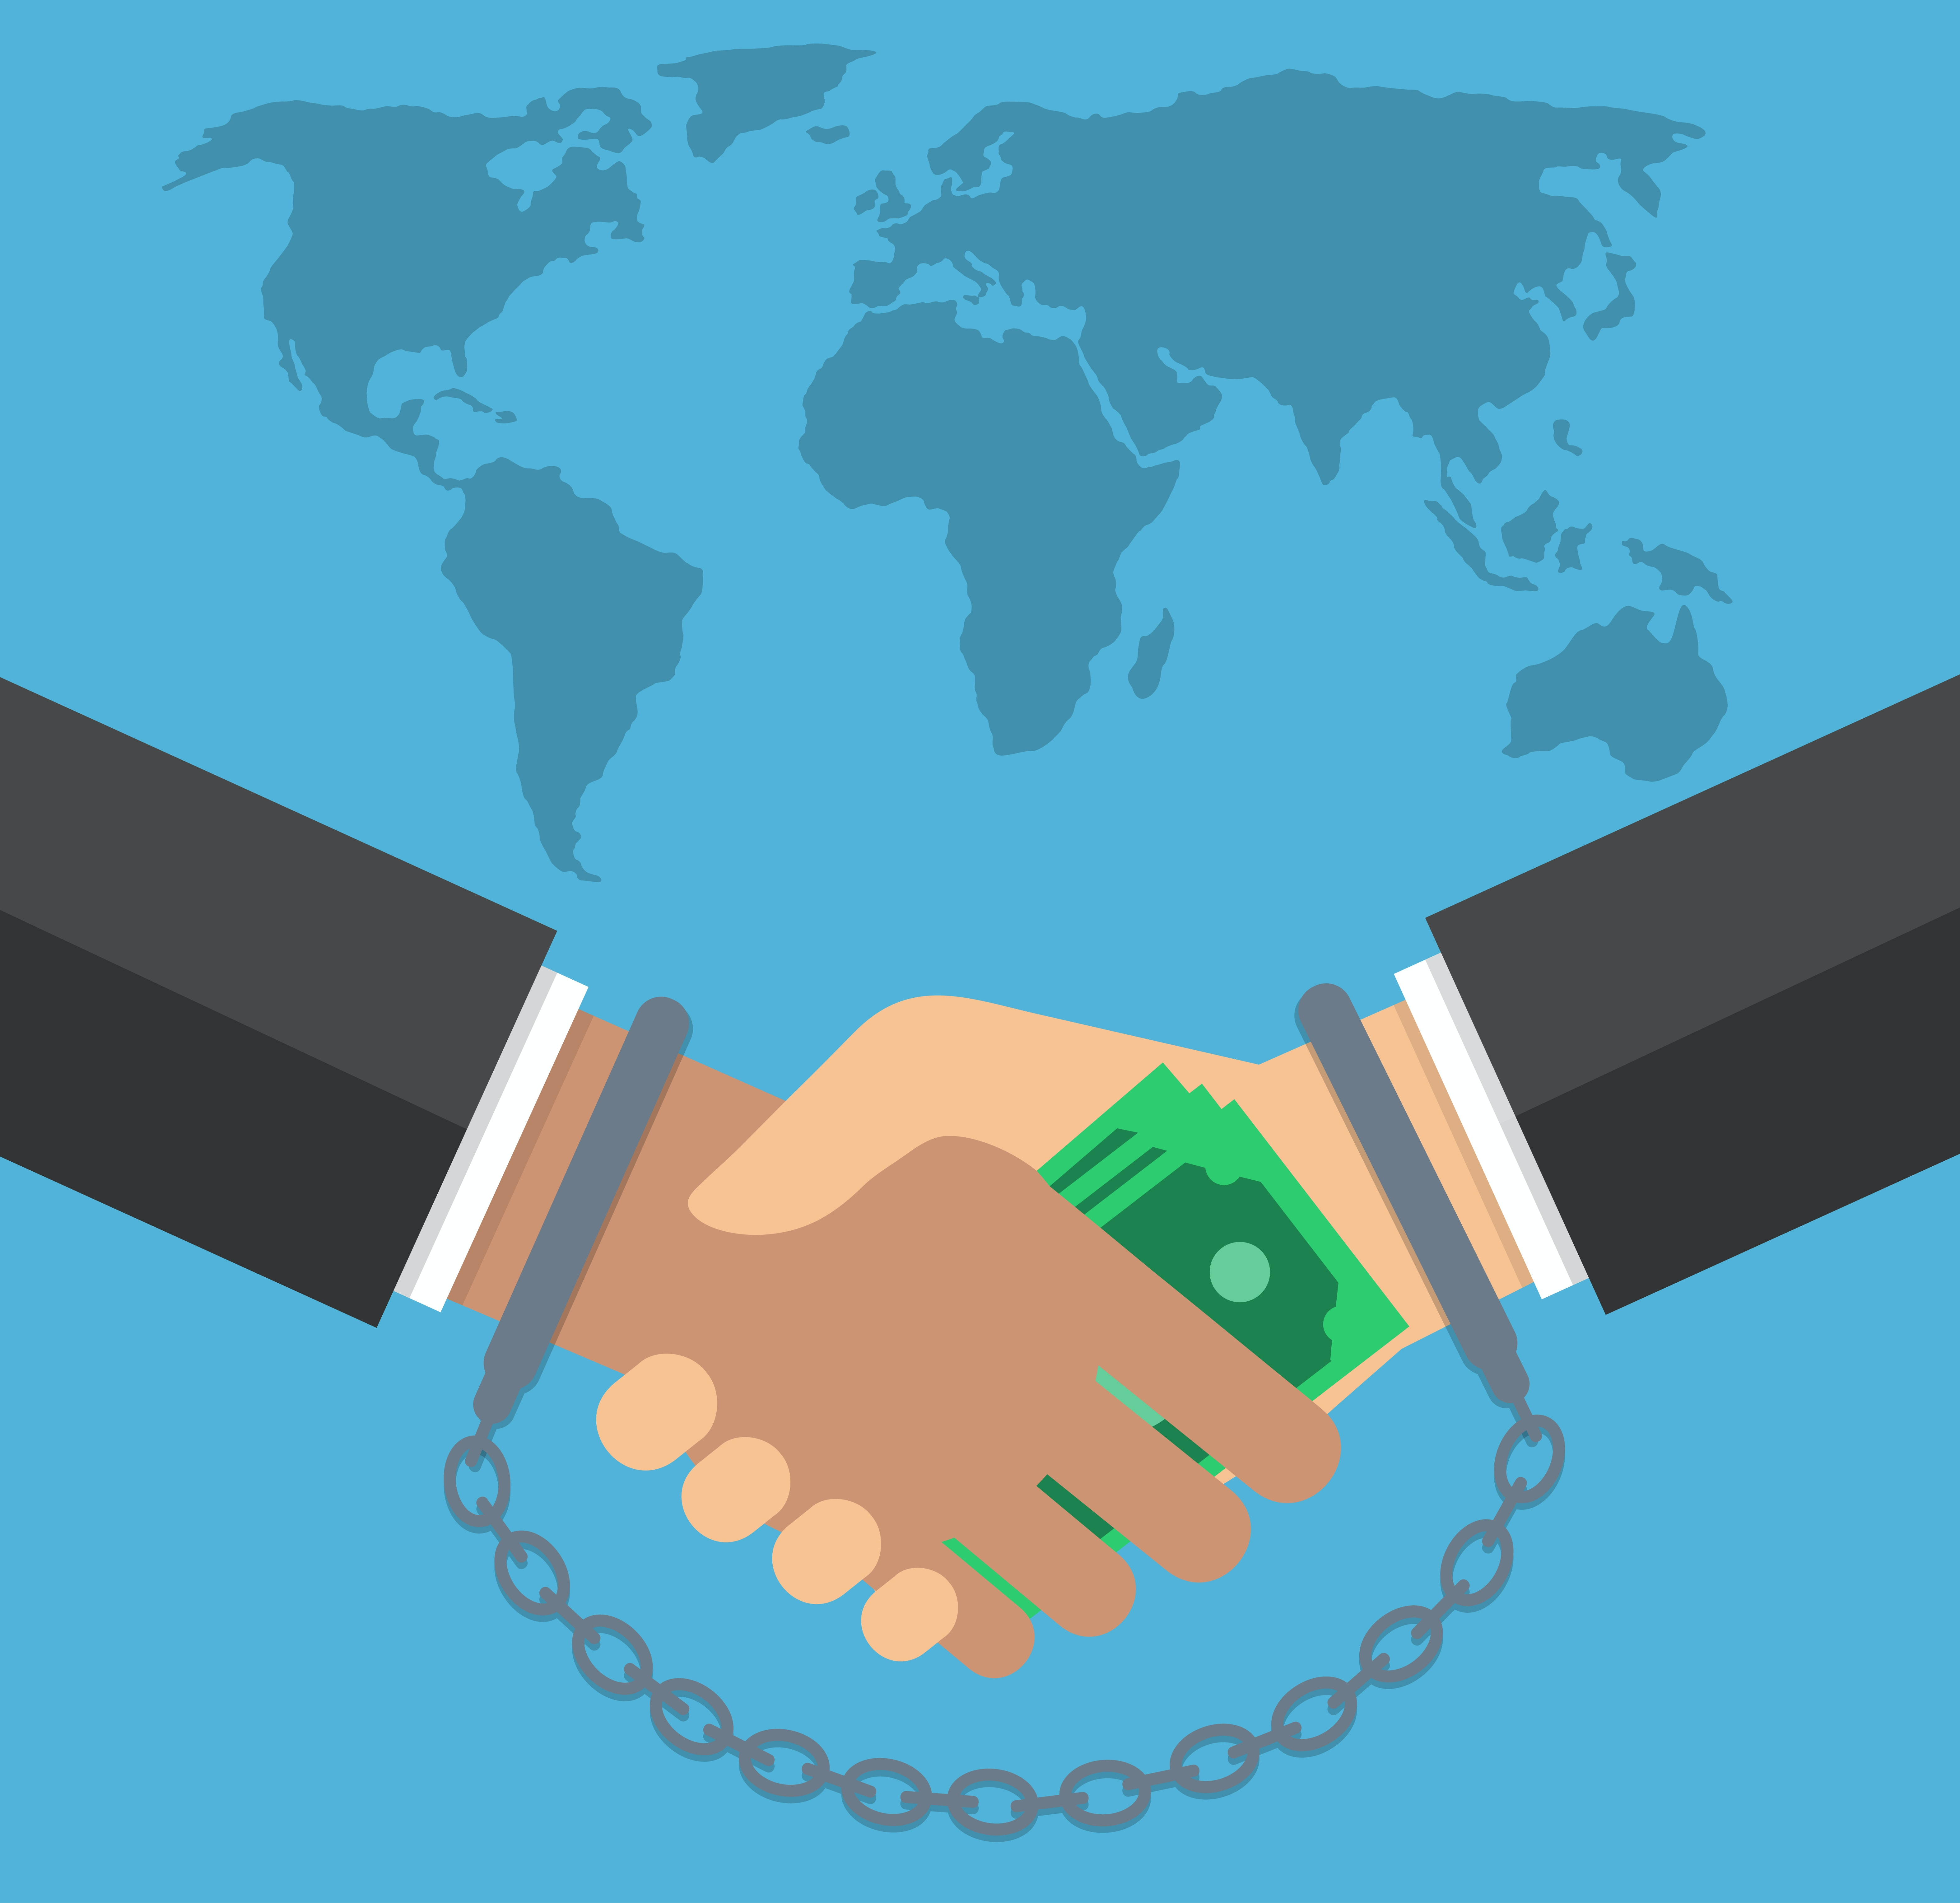 business ethics corruption 4 examples of ethical issues in business corruption inevitably leads to a  diminished business climate when the public trust is put at risk, according to  stanford.